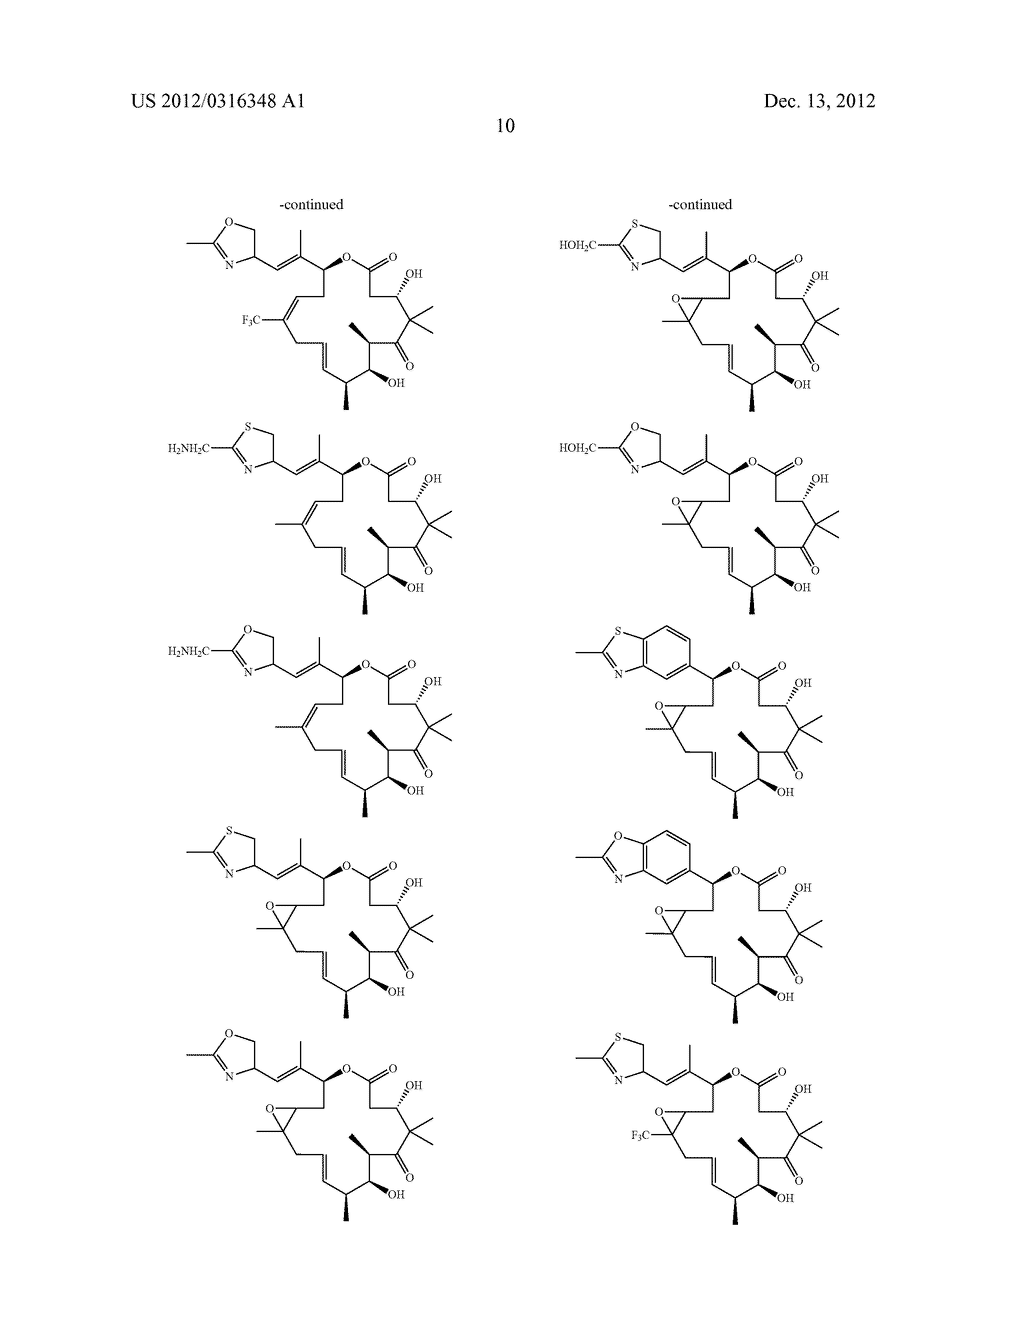 SYNTHESIS OF EPOTHILONES, INTERMEDIATES THERETO AND ANALOGUES THEREOF - diagram, schematic, and image 81